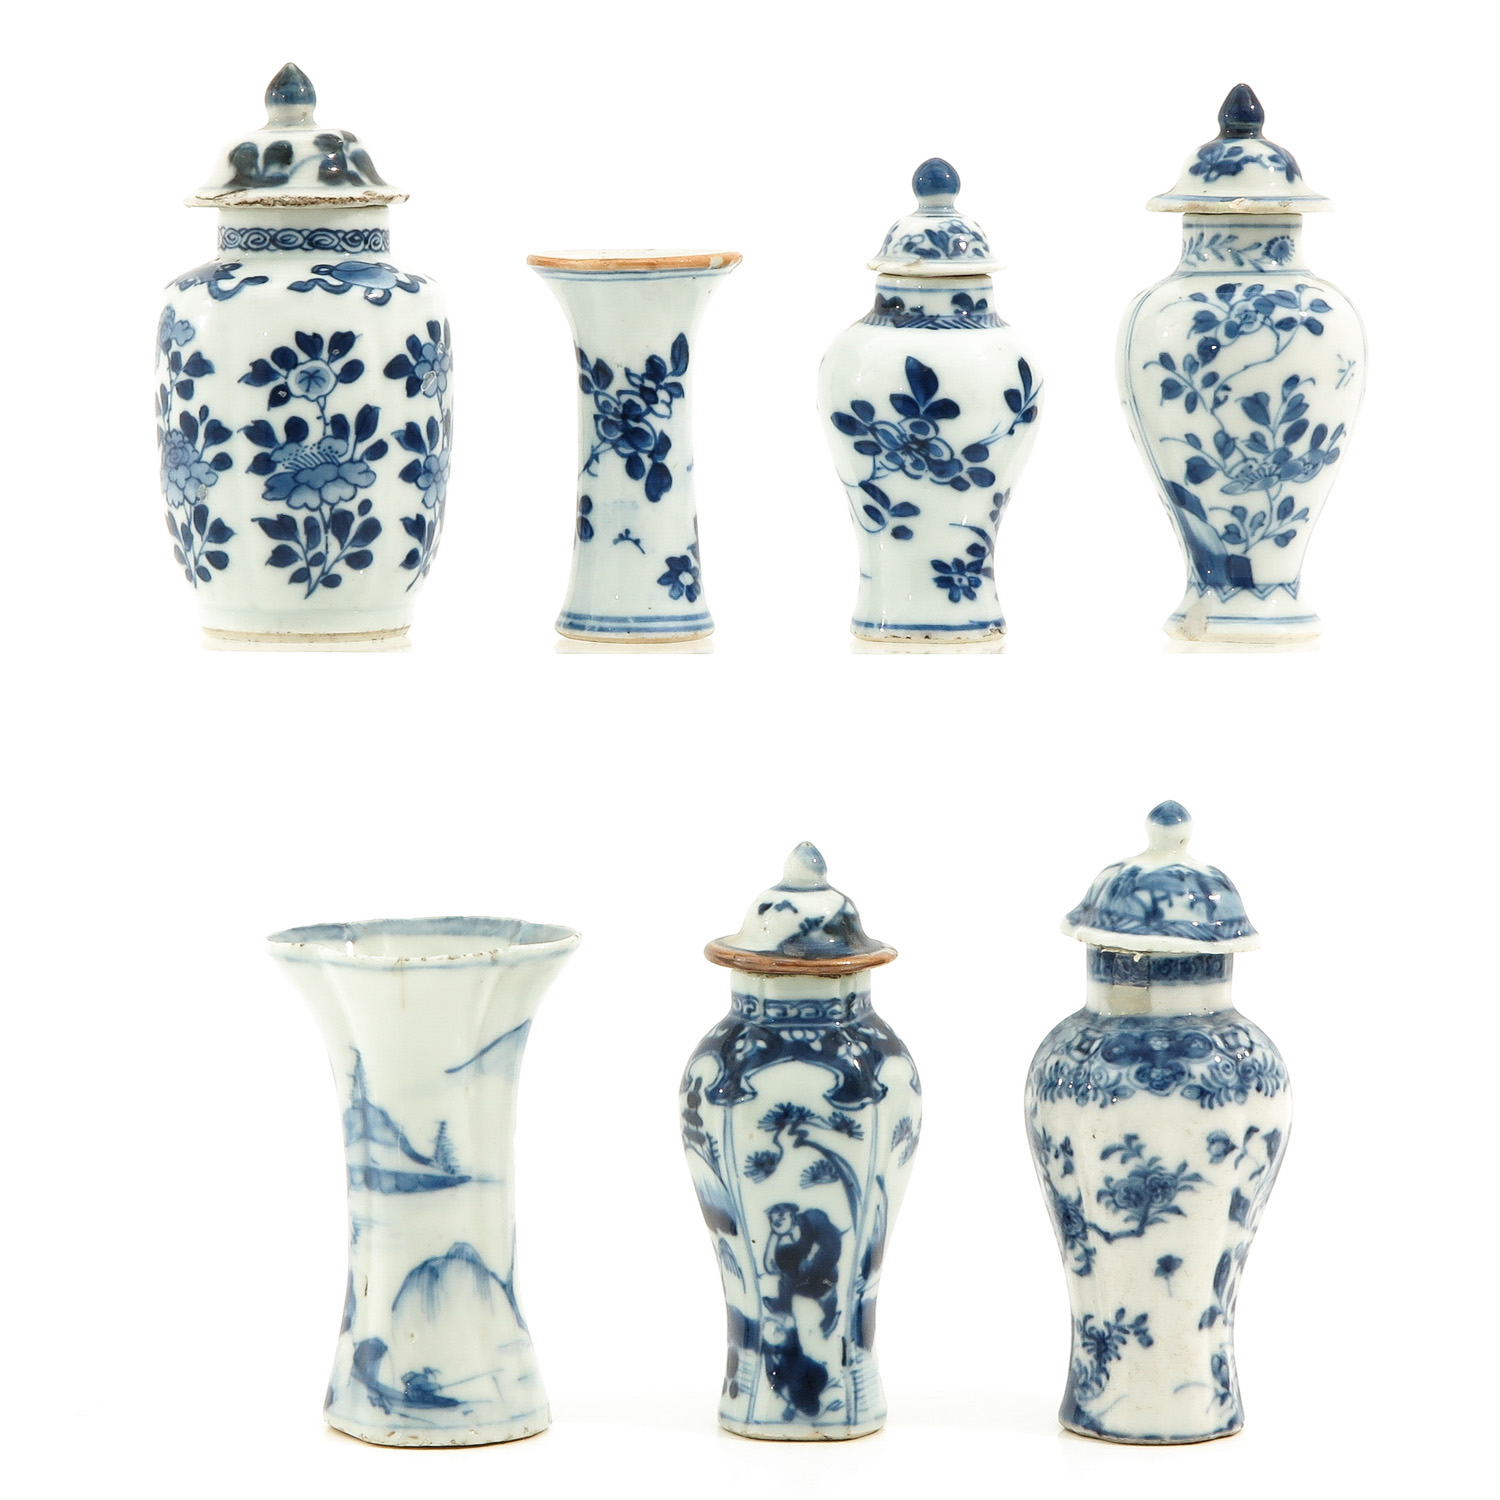 A Collection of 7 Miniature Vases - Image 3 of 9